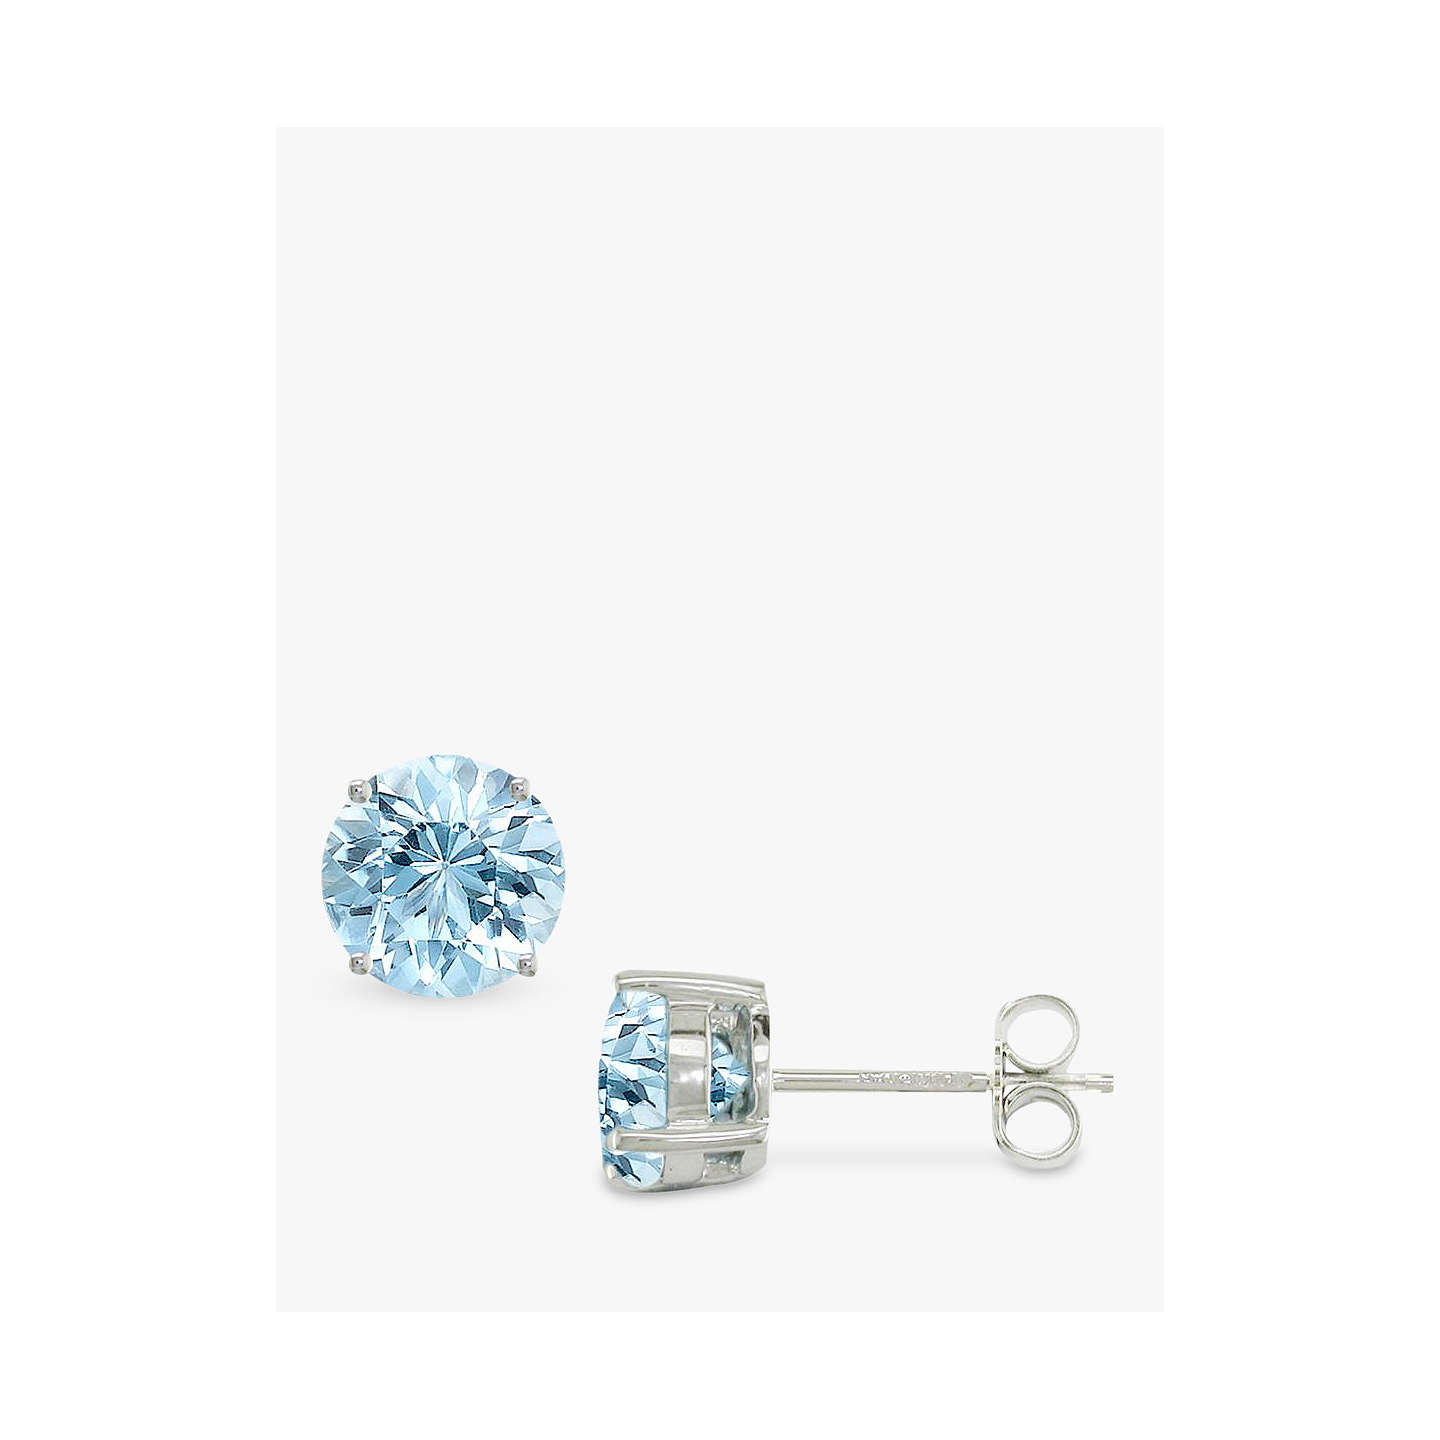 round ebay back aqua earring offer itm special aquamarine screw stud marine